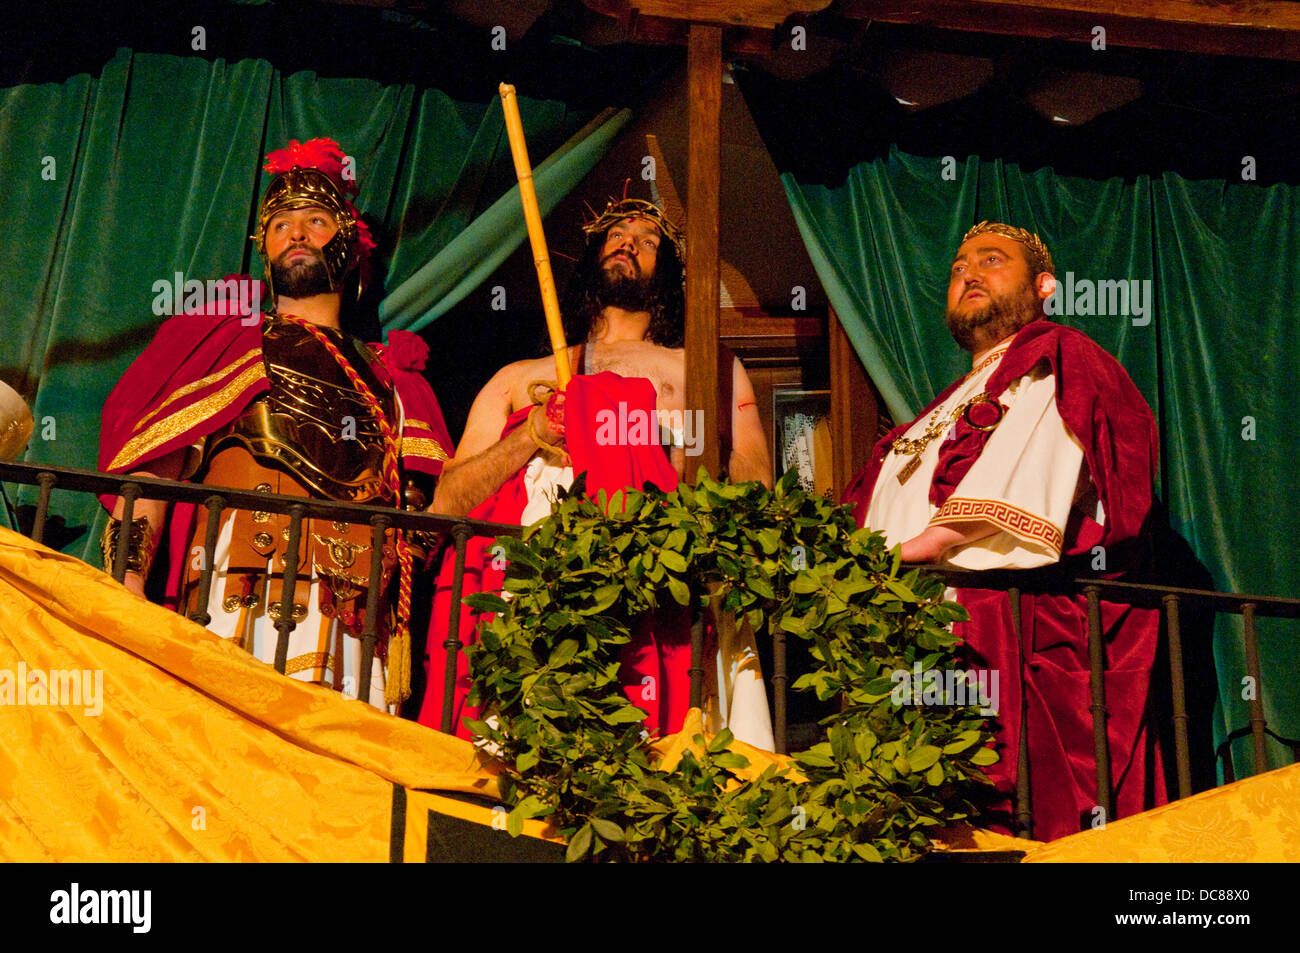 Jesus with Pilate. Holy Week, Passion of Chinchon, Chinchon, Madrid province, Spain. Stock Photo